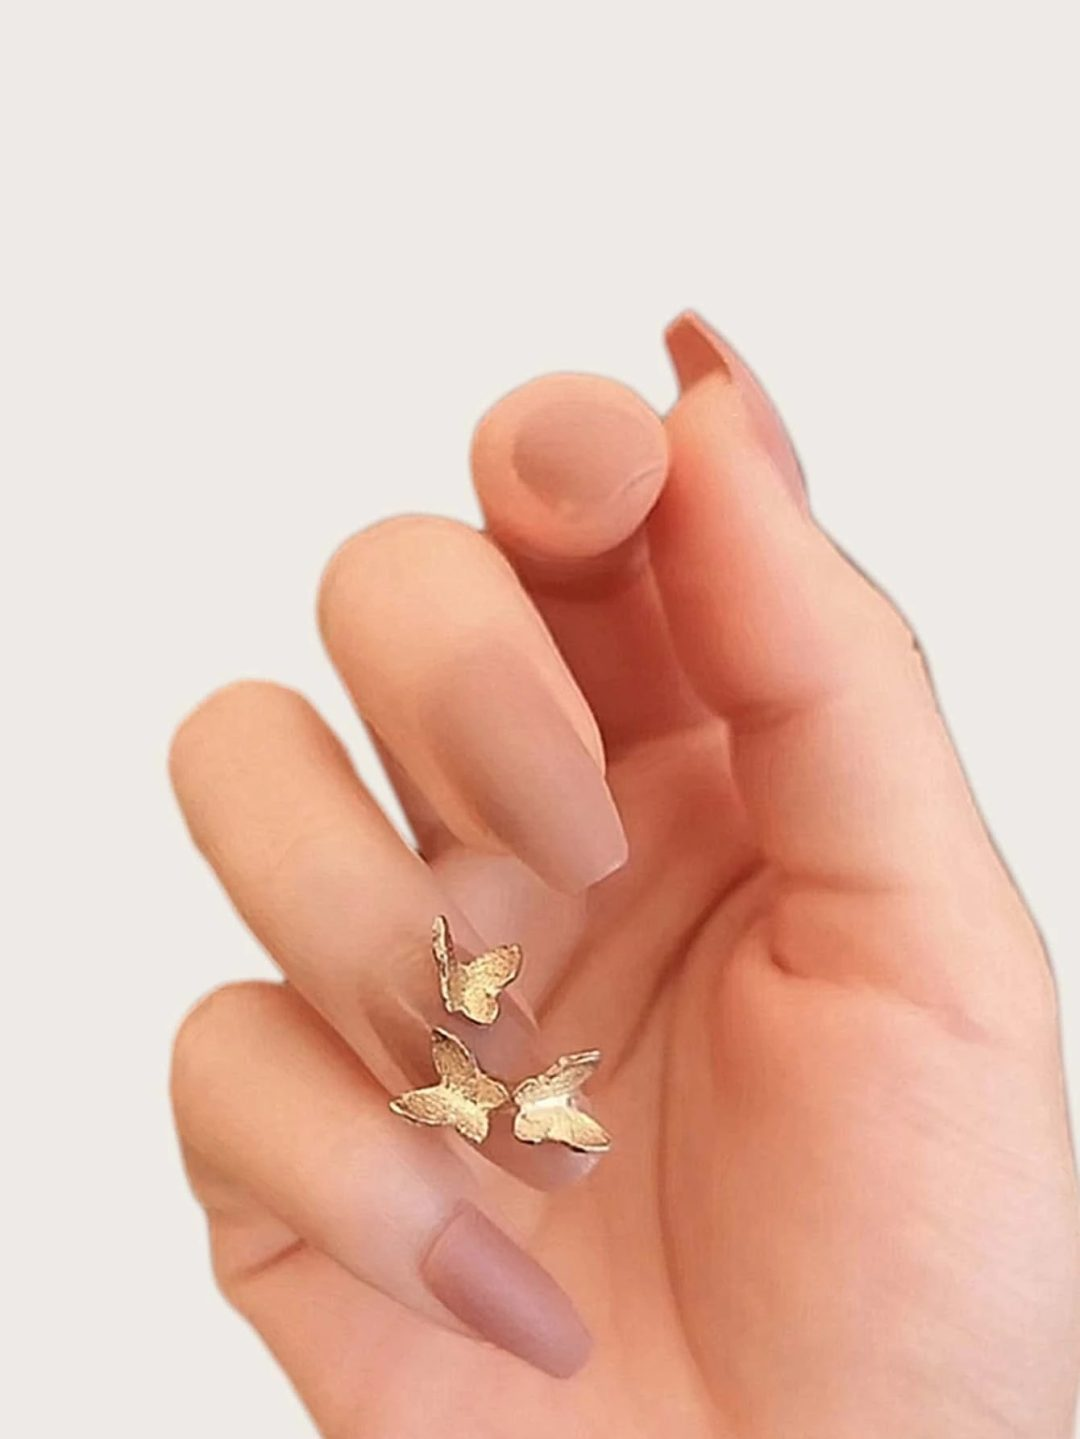 Nude nails with 3D gold butterfly ornaments